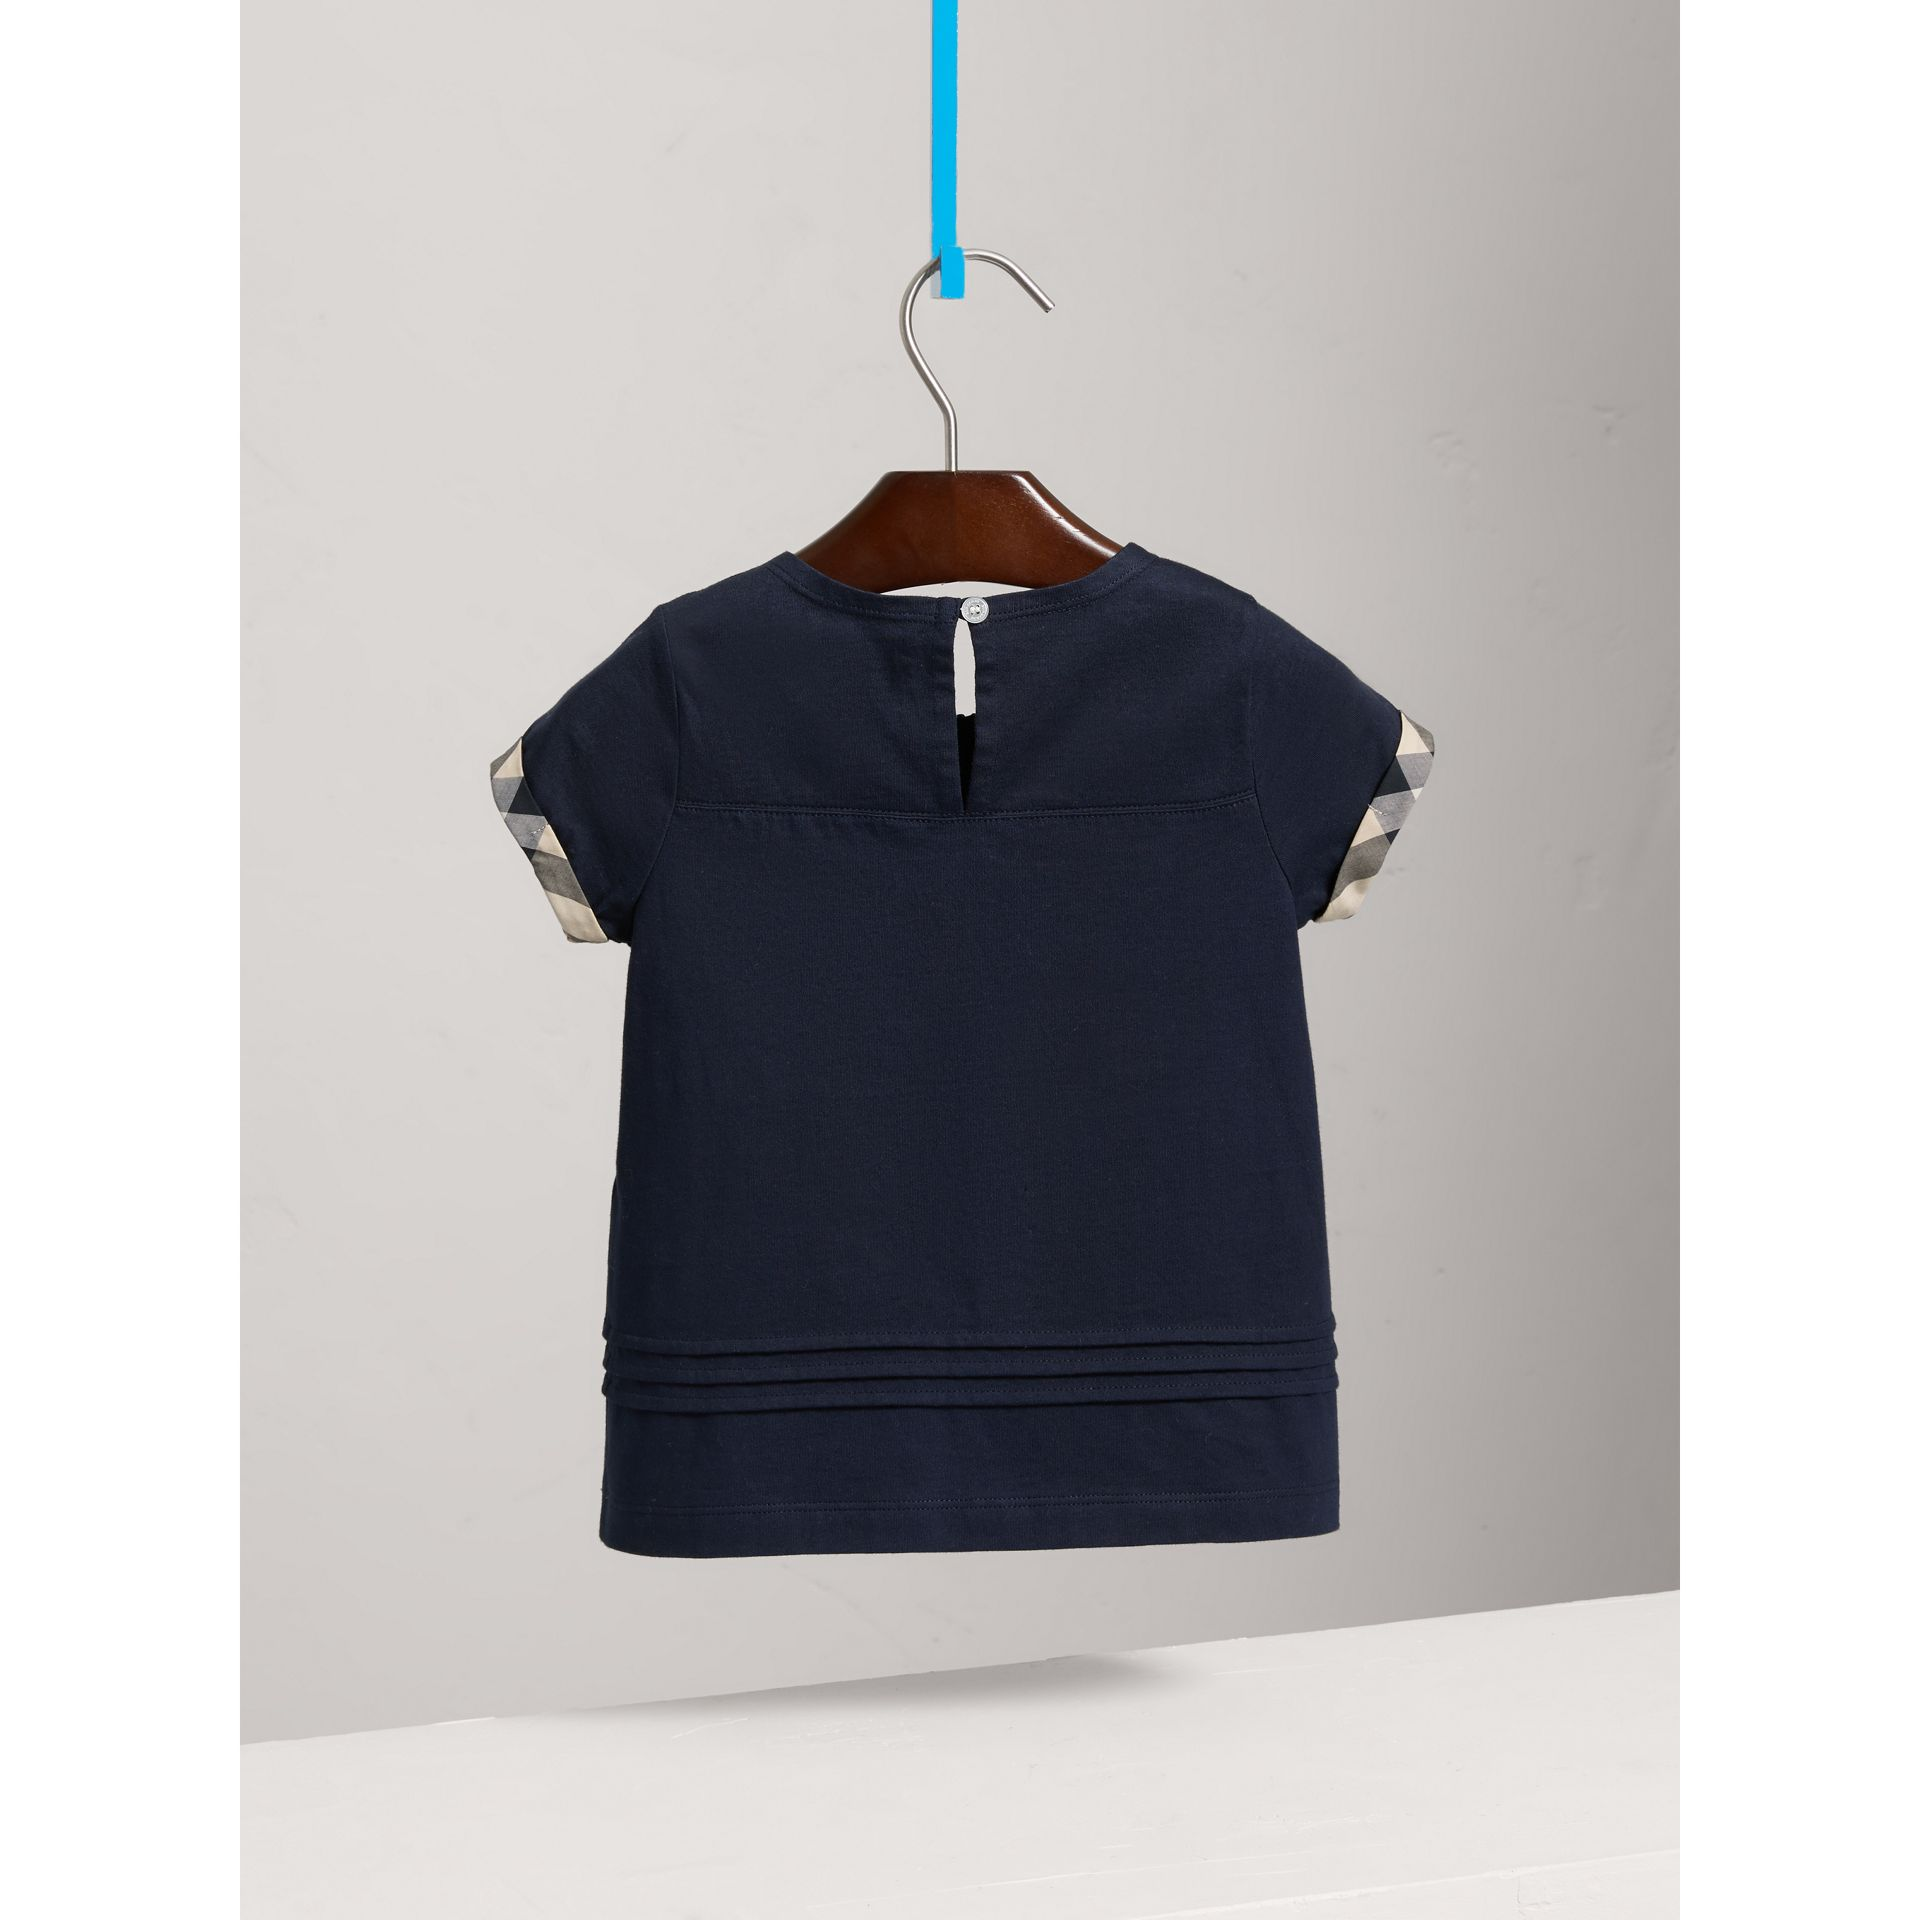 Pleat and Check Detail Cotton T-shirt in Navy - Girl | Burberry - gallery image 3